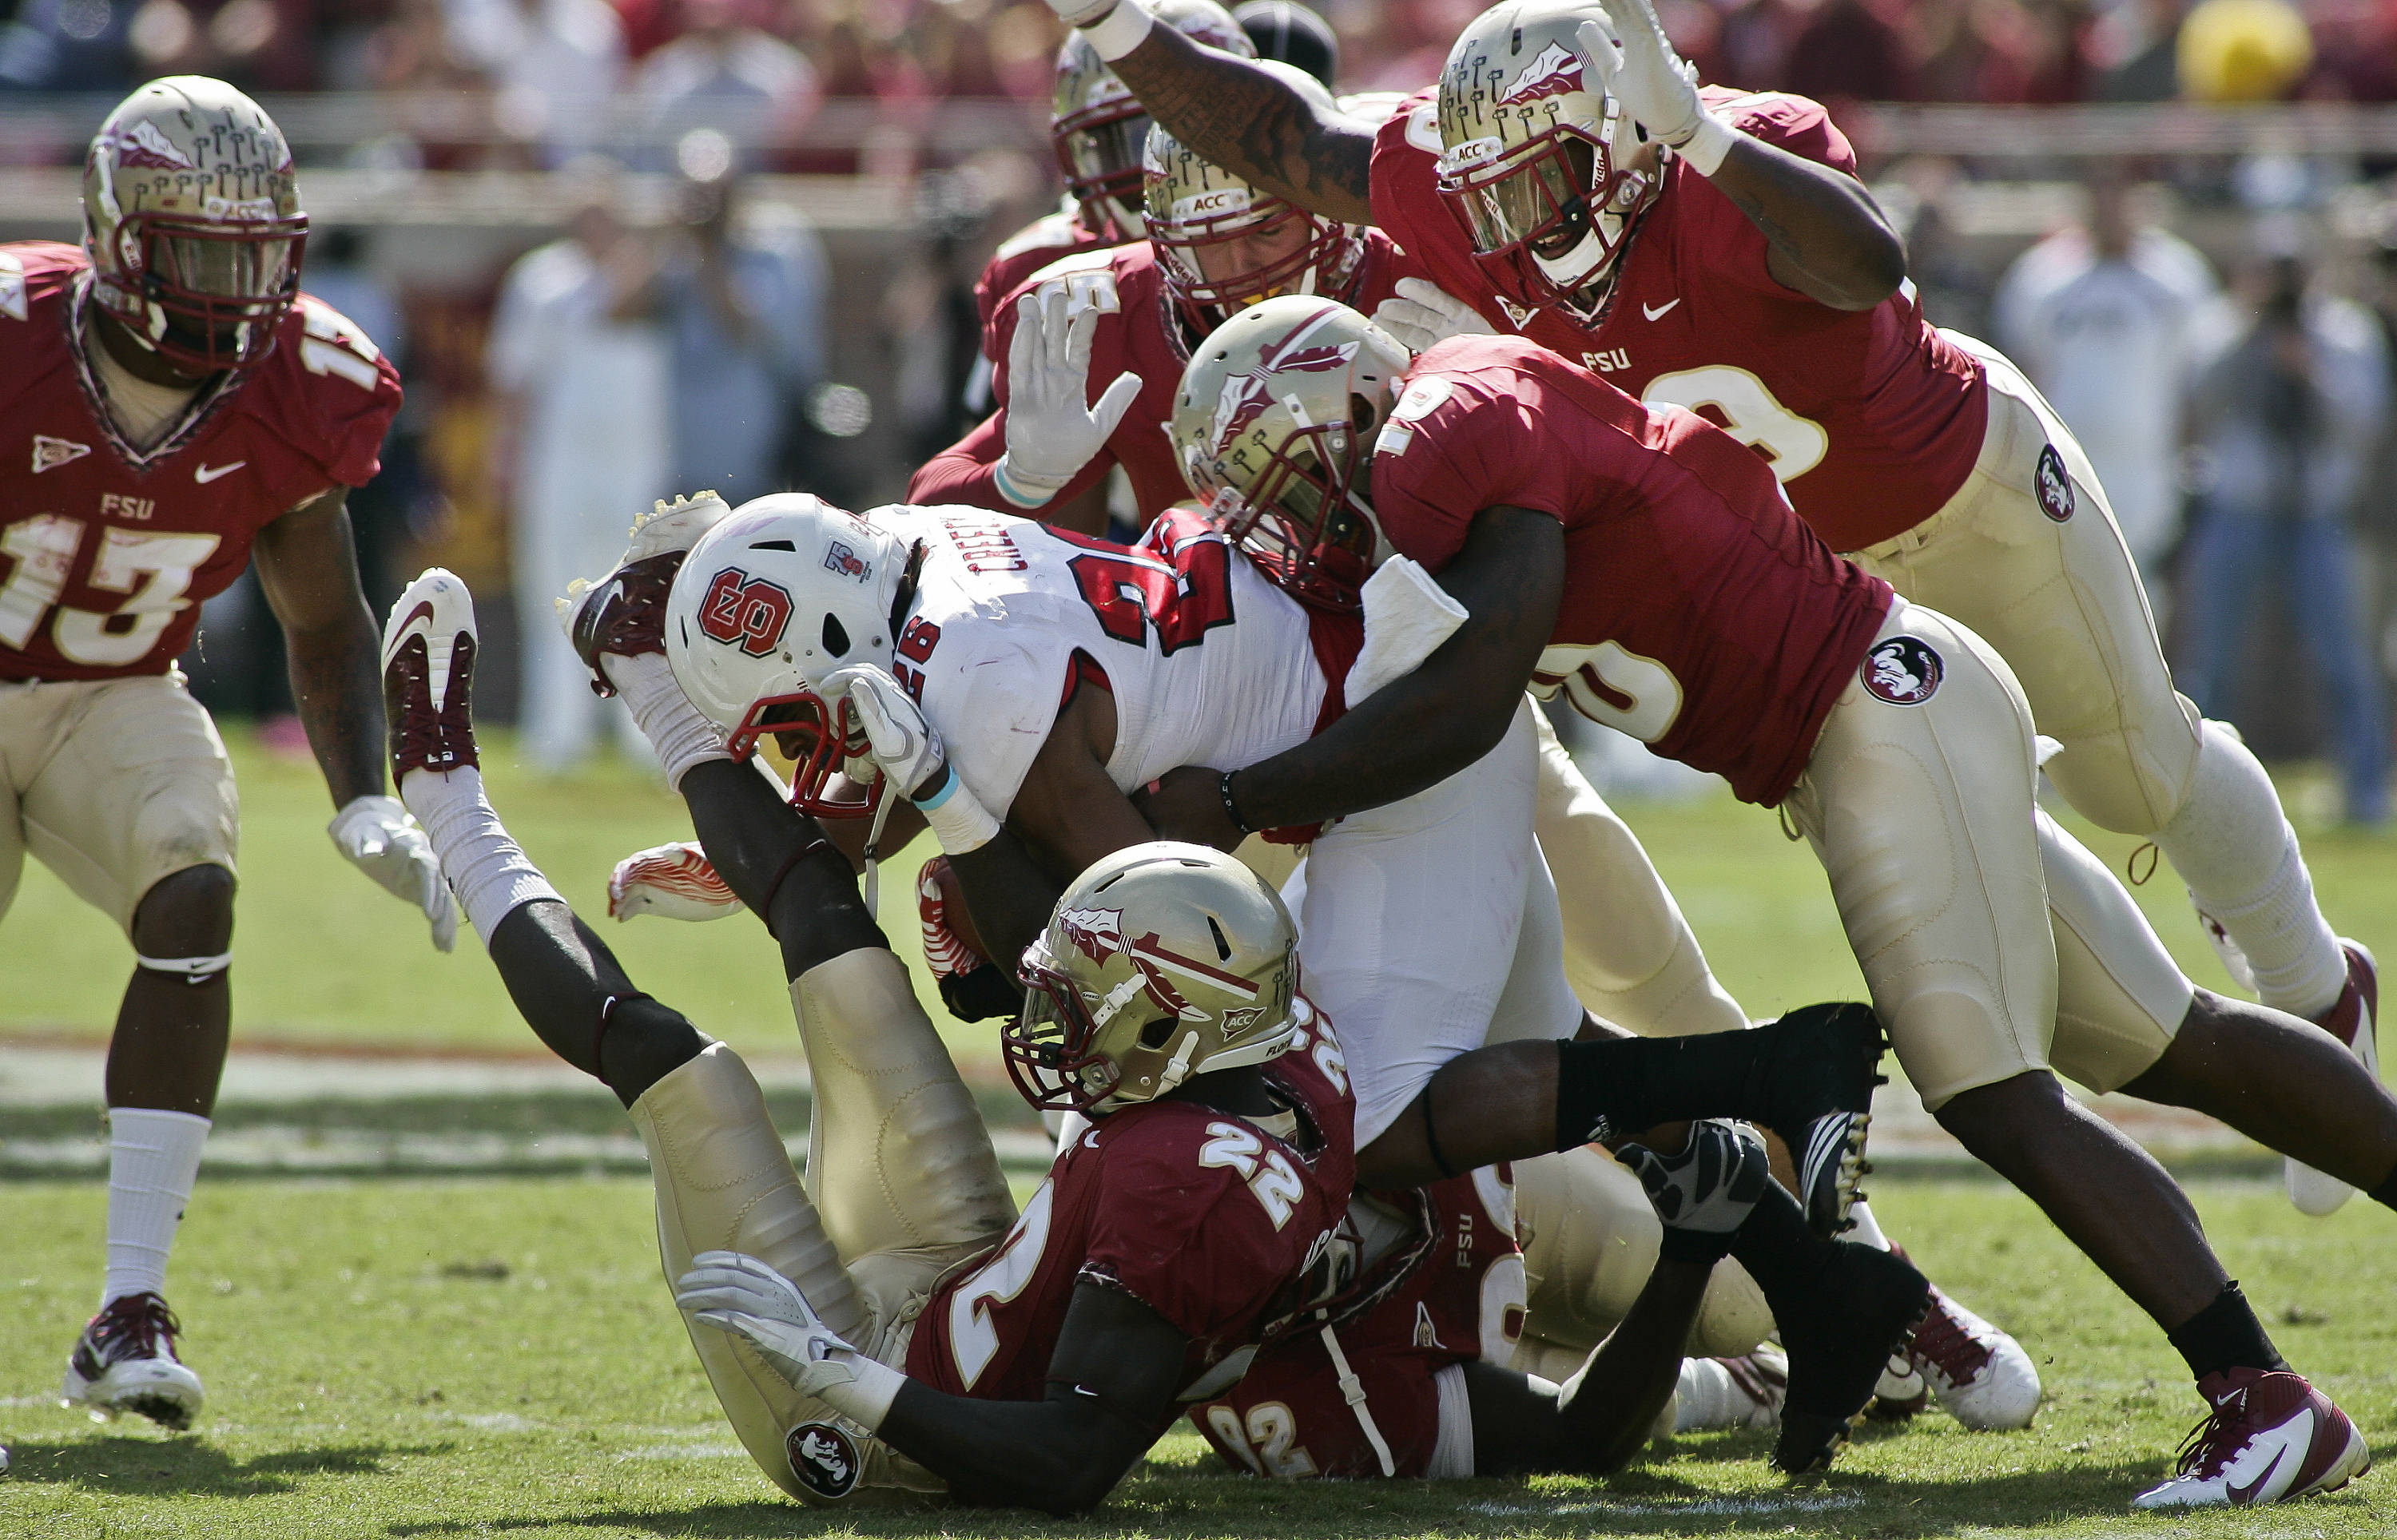 Florida State defenders swarm all over North Carolina State's Tony Creecy (26) in the second quarter of an NCAA college football game at Doak Campbell Stadium in Tallahassee, Fla., Saturday, Oct. 29, 2011. (AP Photo/Phil Sears)